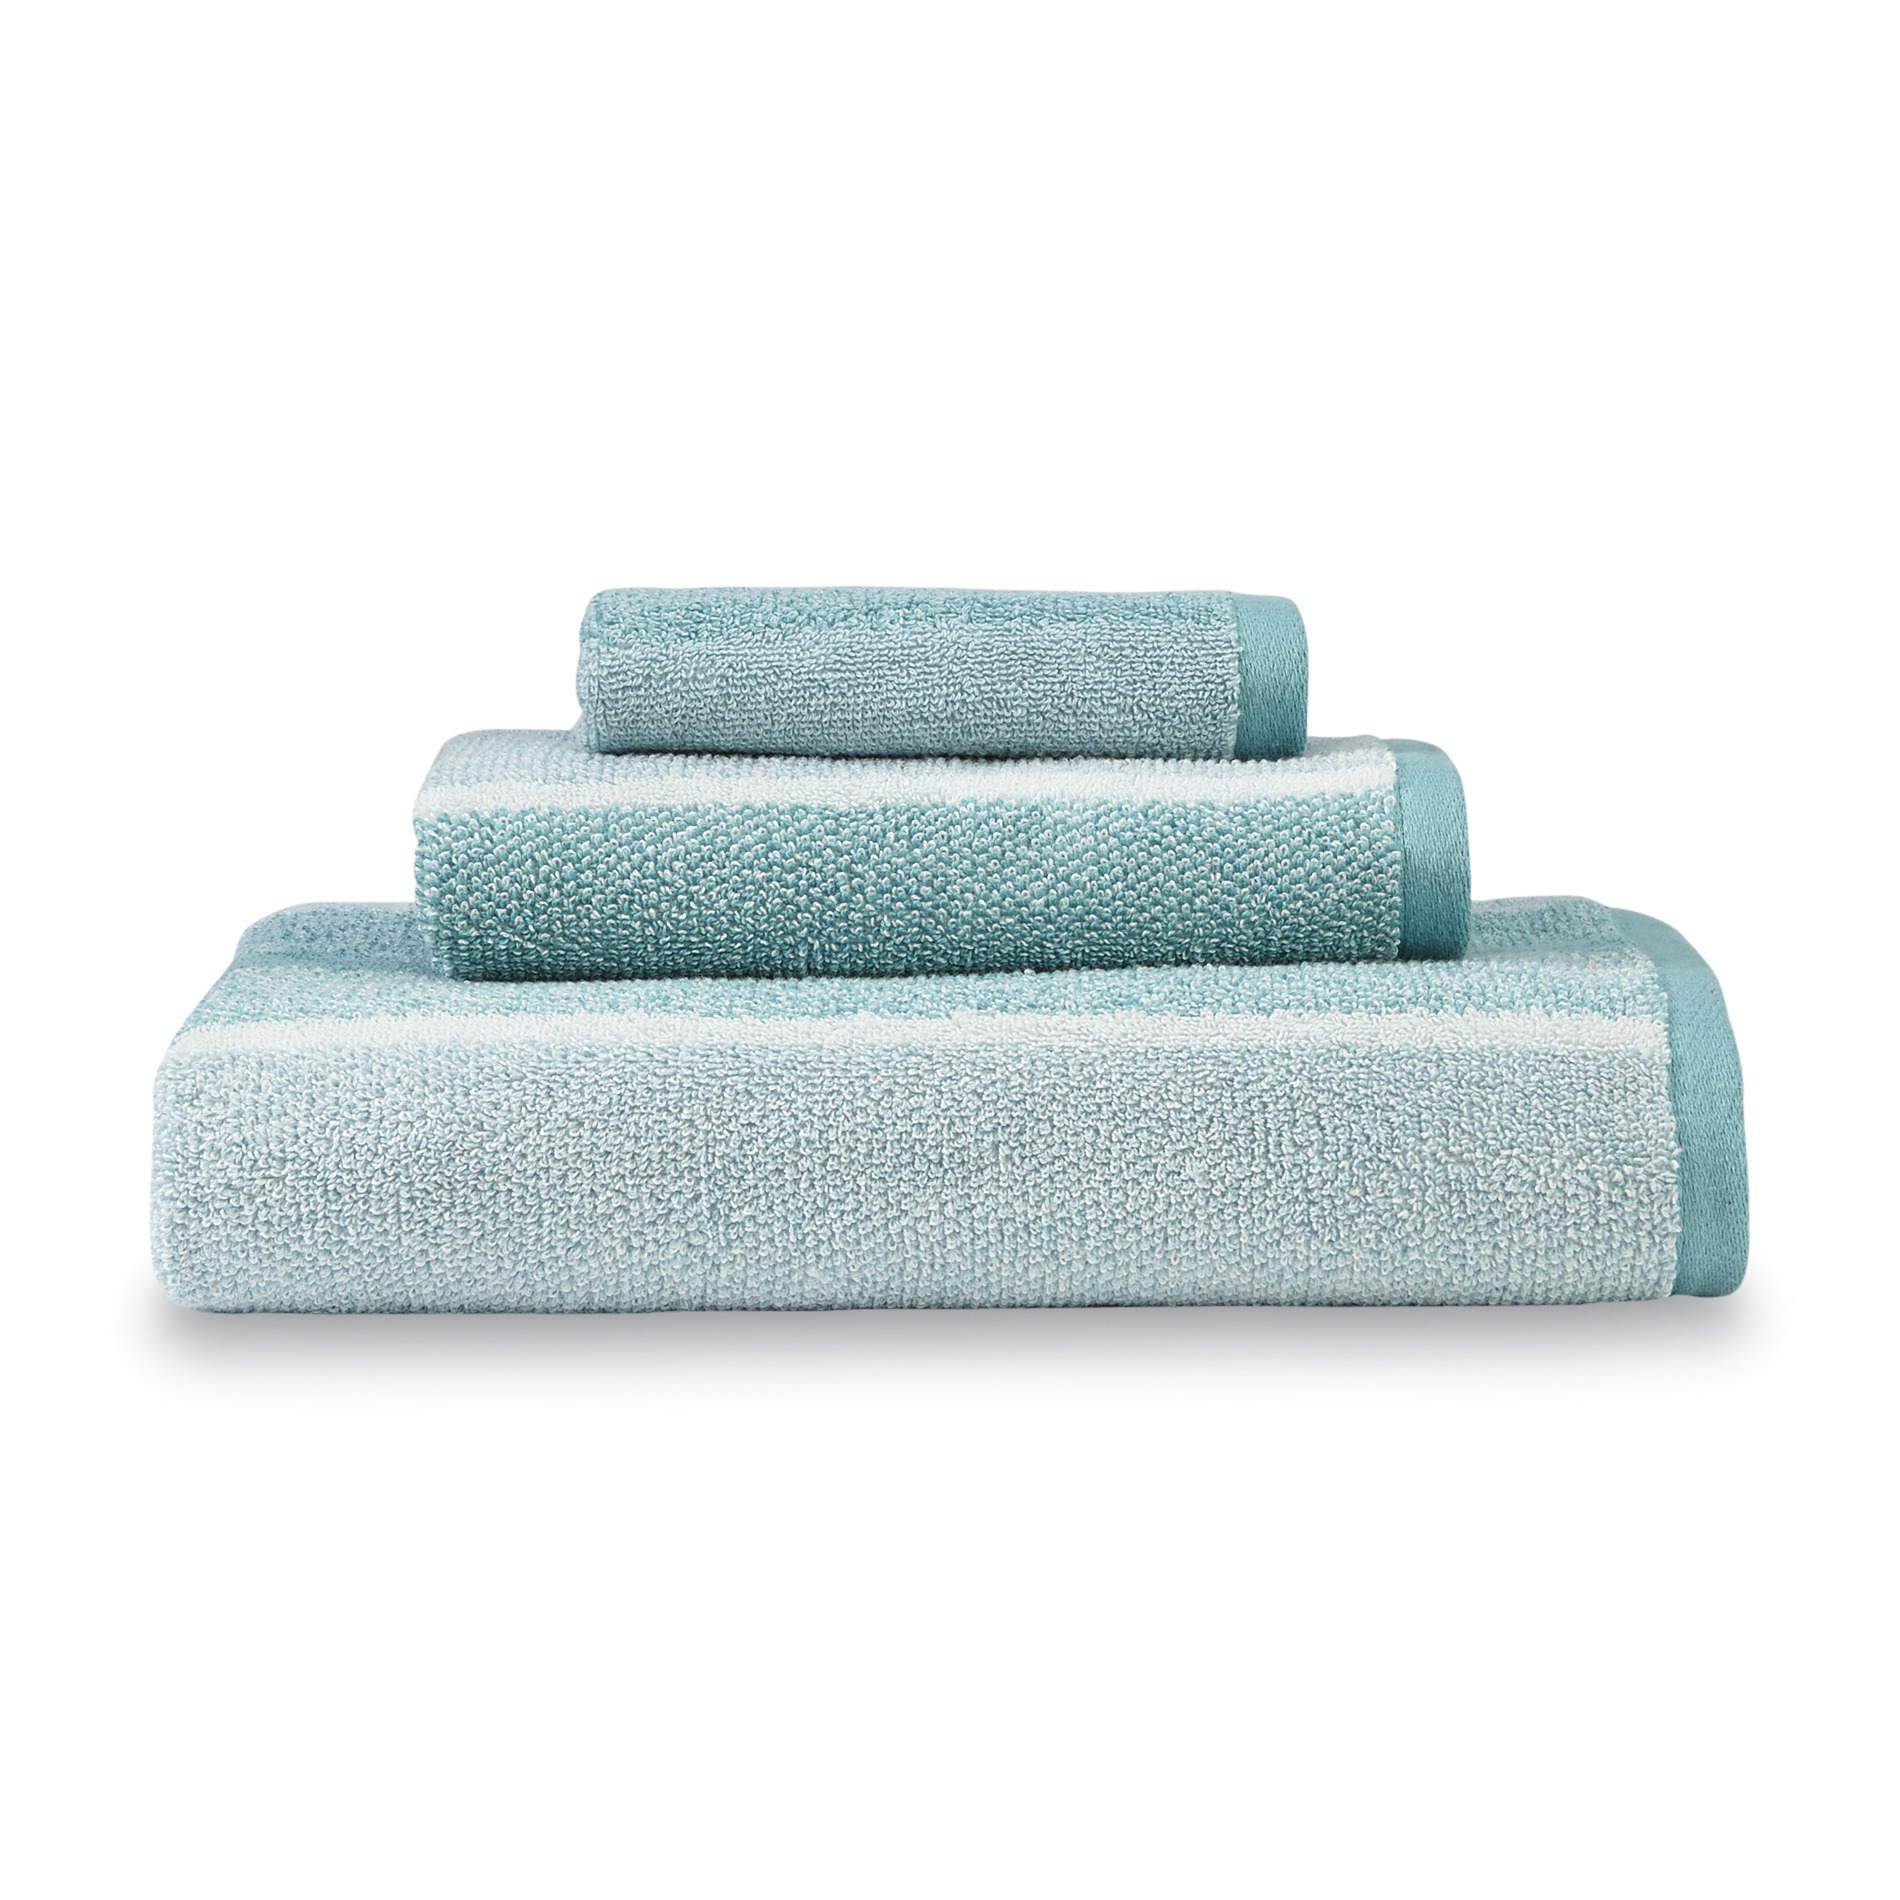 Grand Resort Bath Towel Hand Towel or Washcloth - Ombre